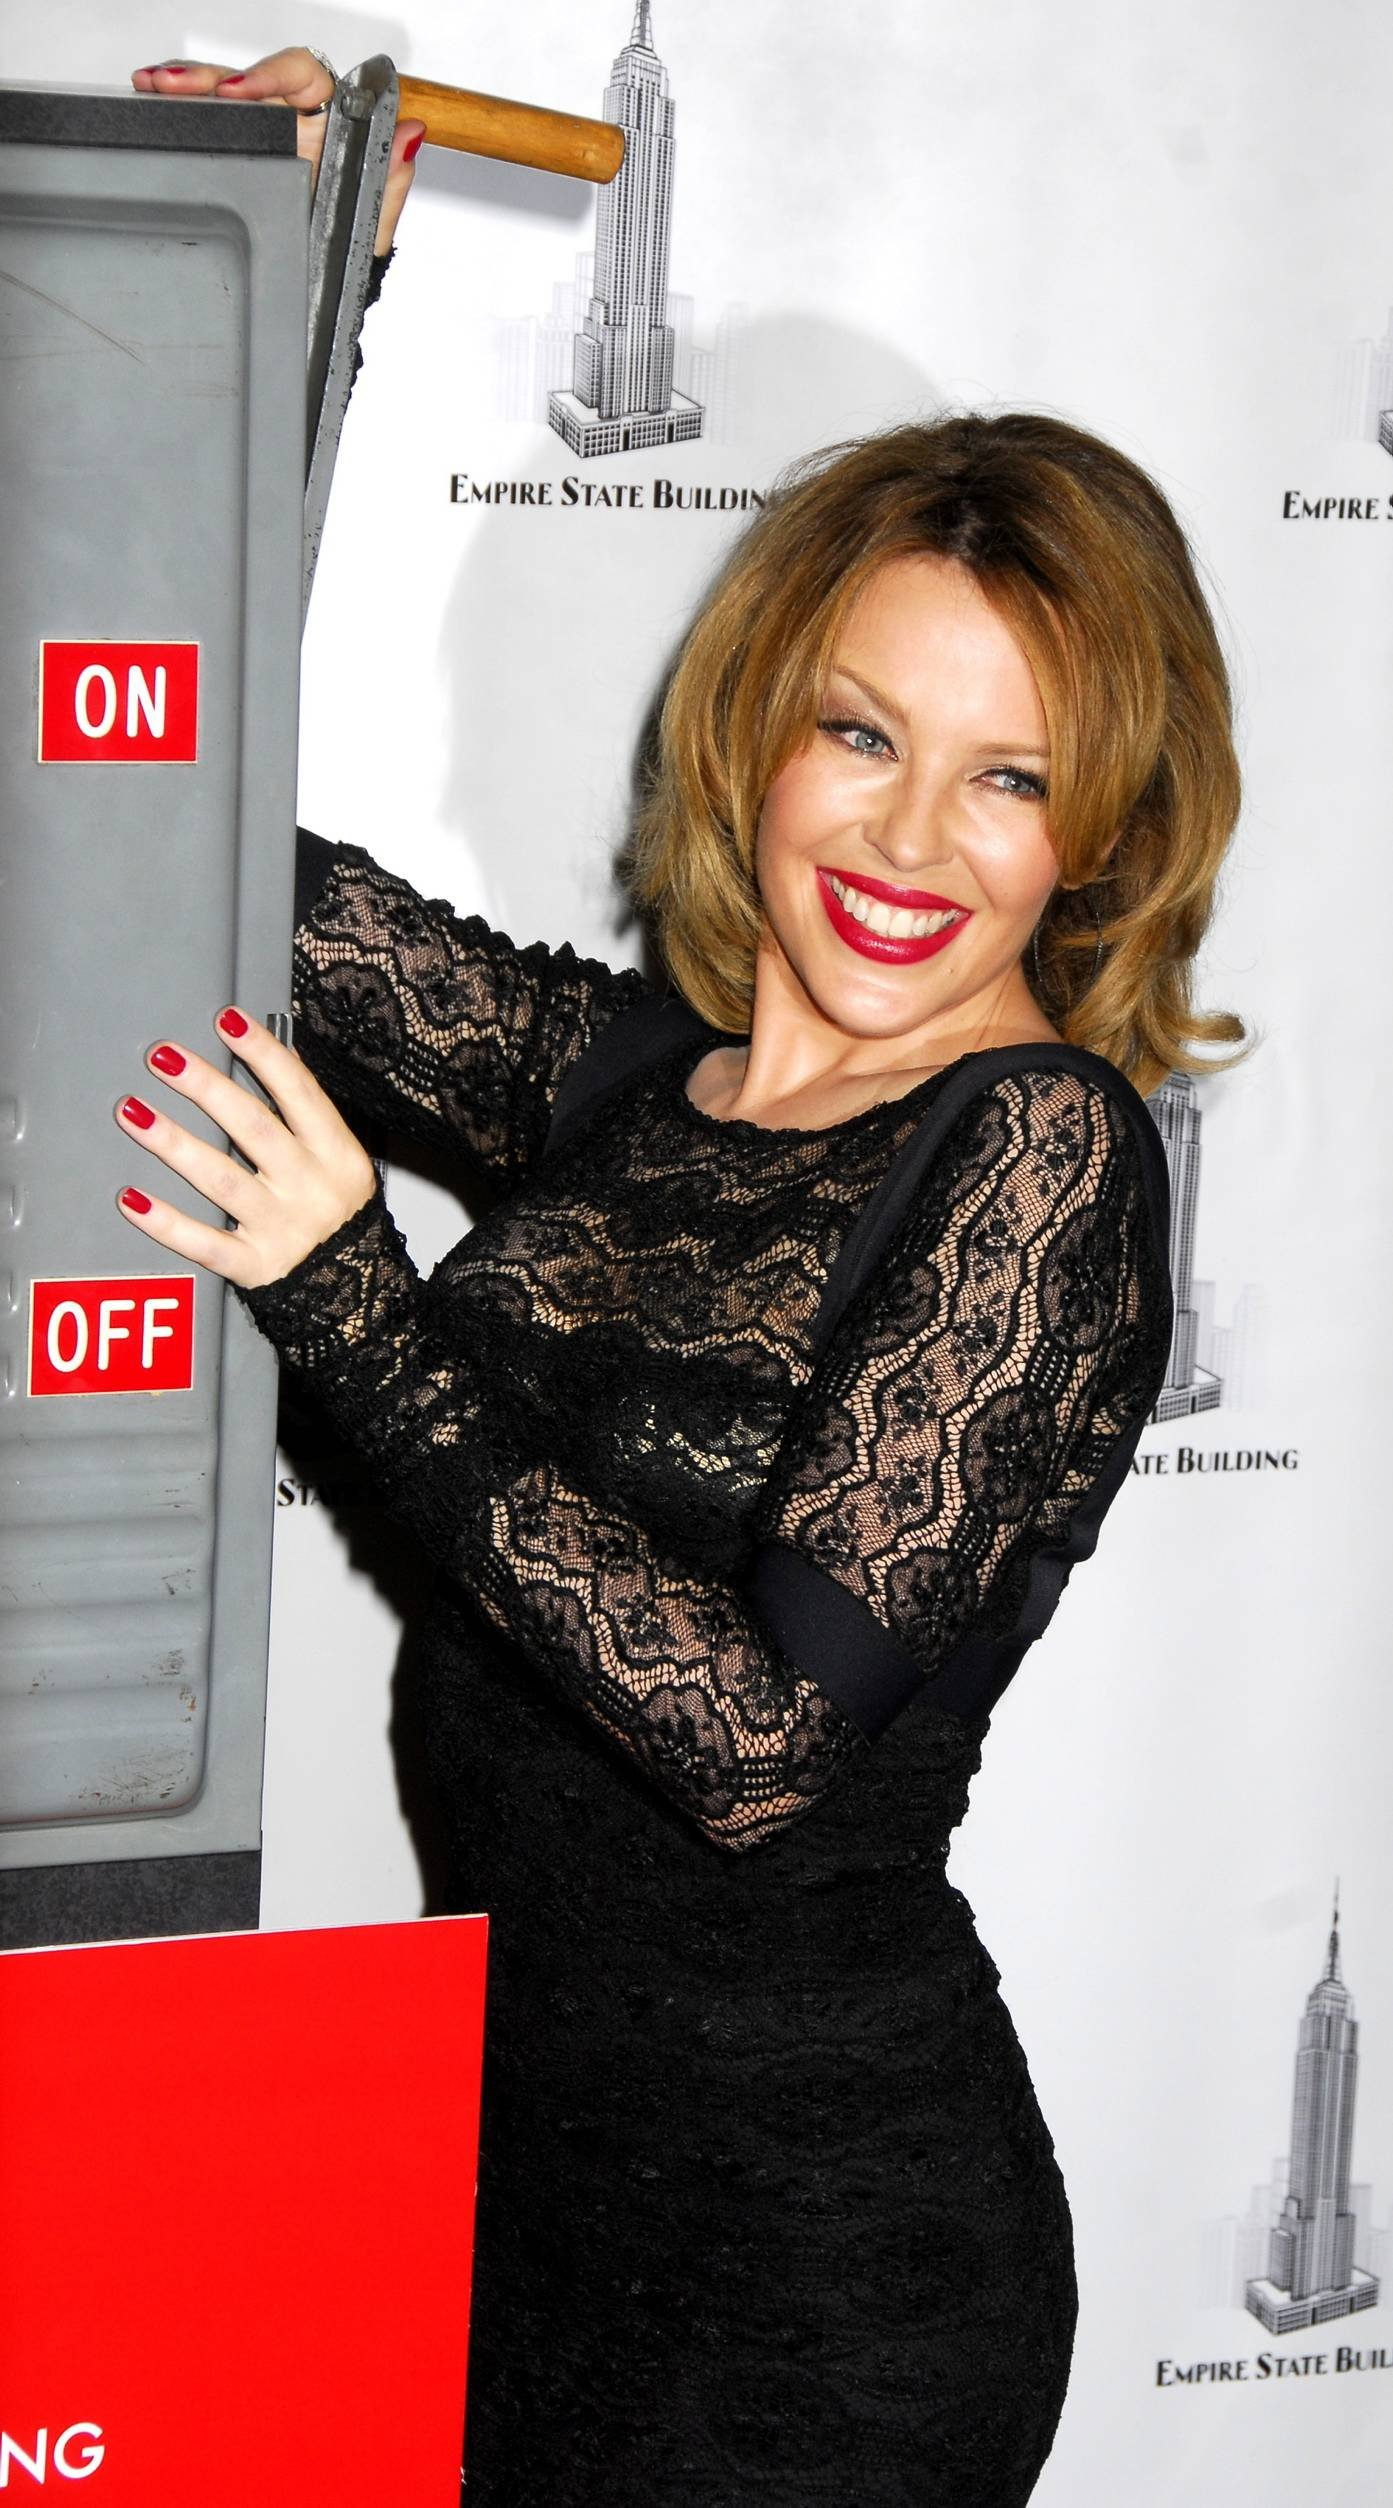 28897_Celebutopia-Kylie_Minogue_lights_The_Empire_State_Building-08_122_197lo.jpg